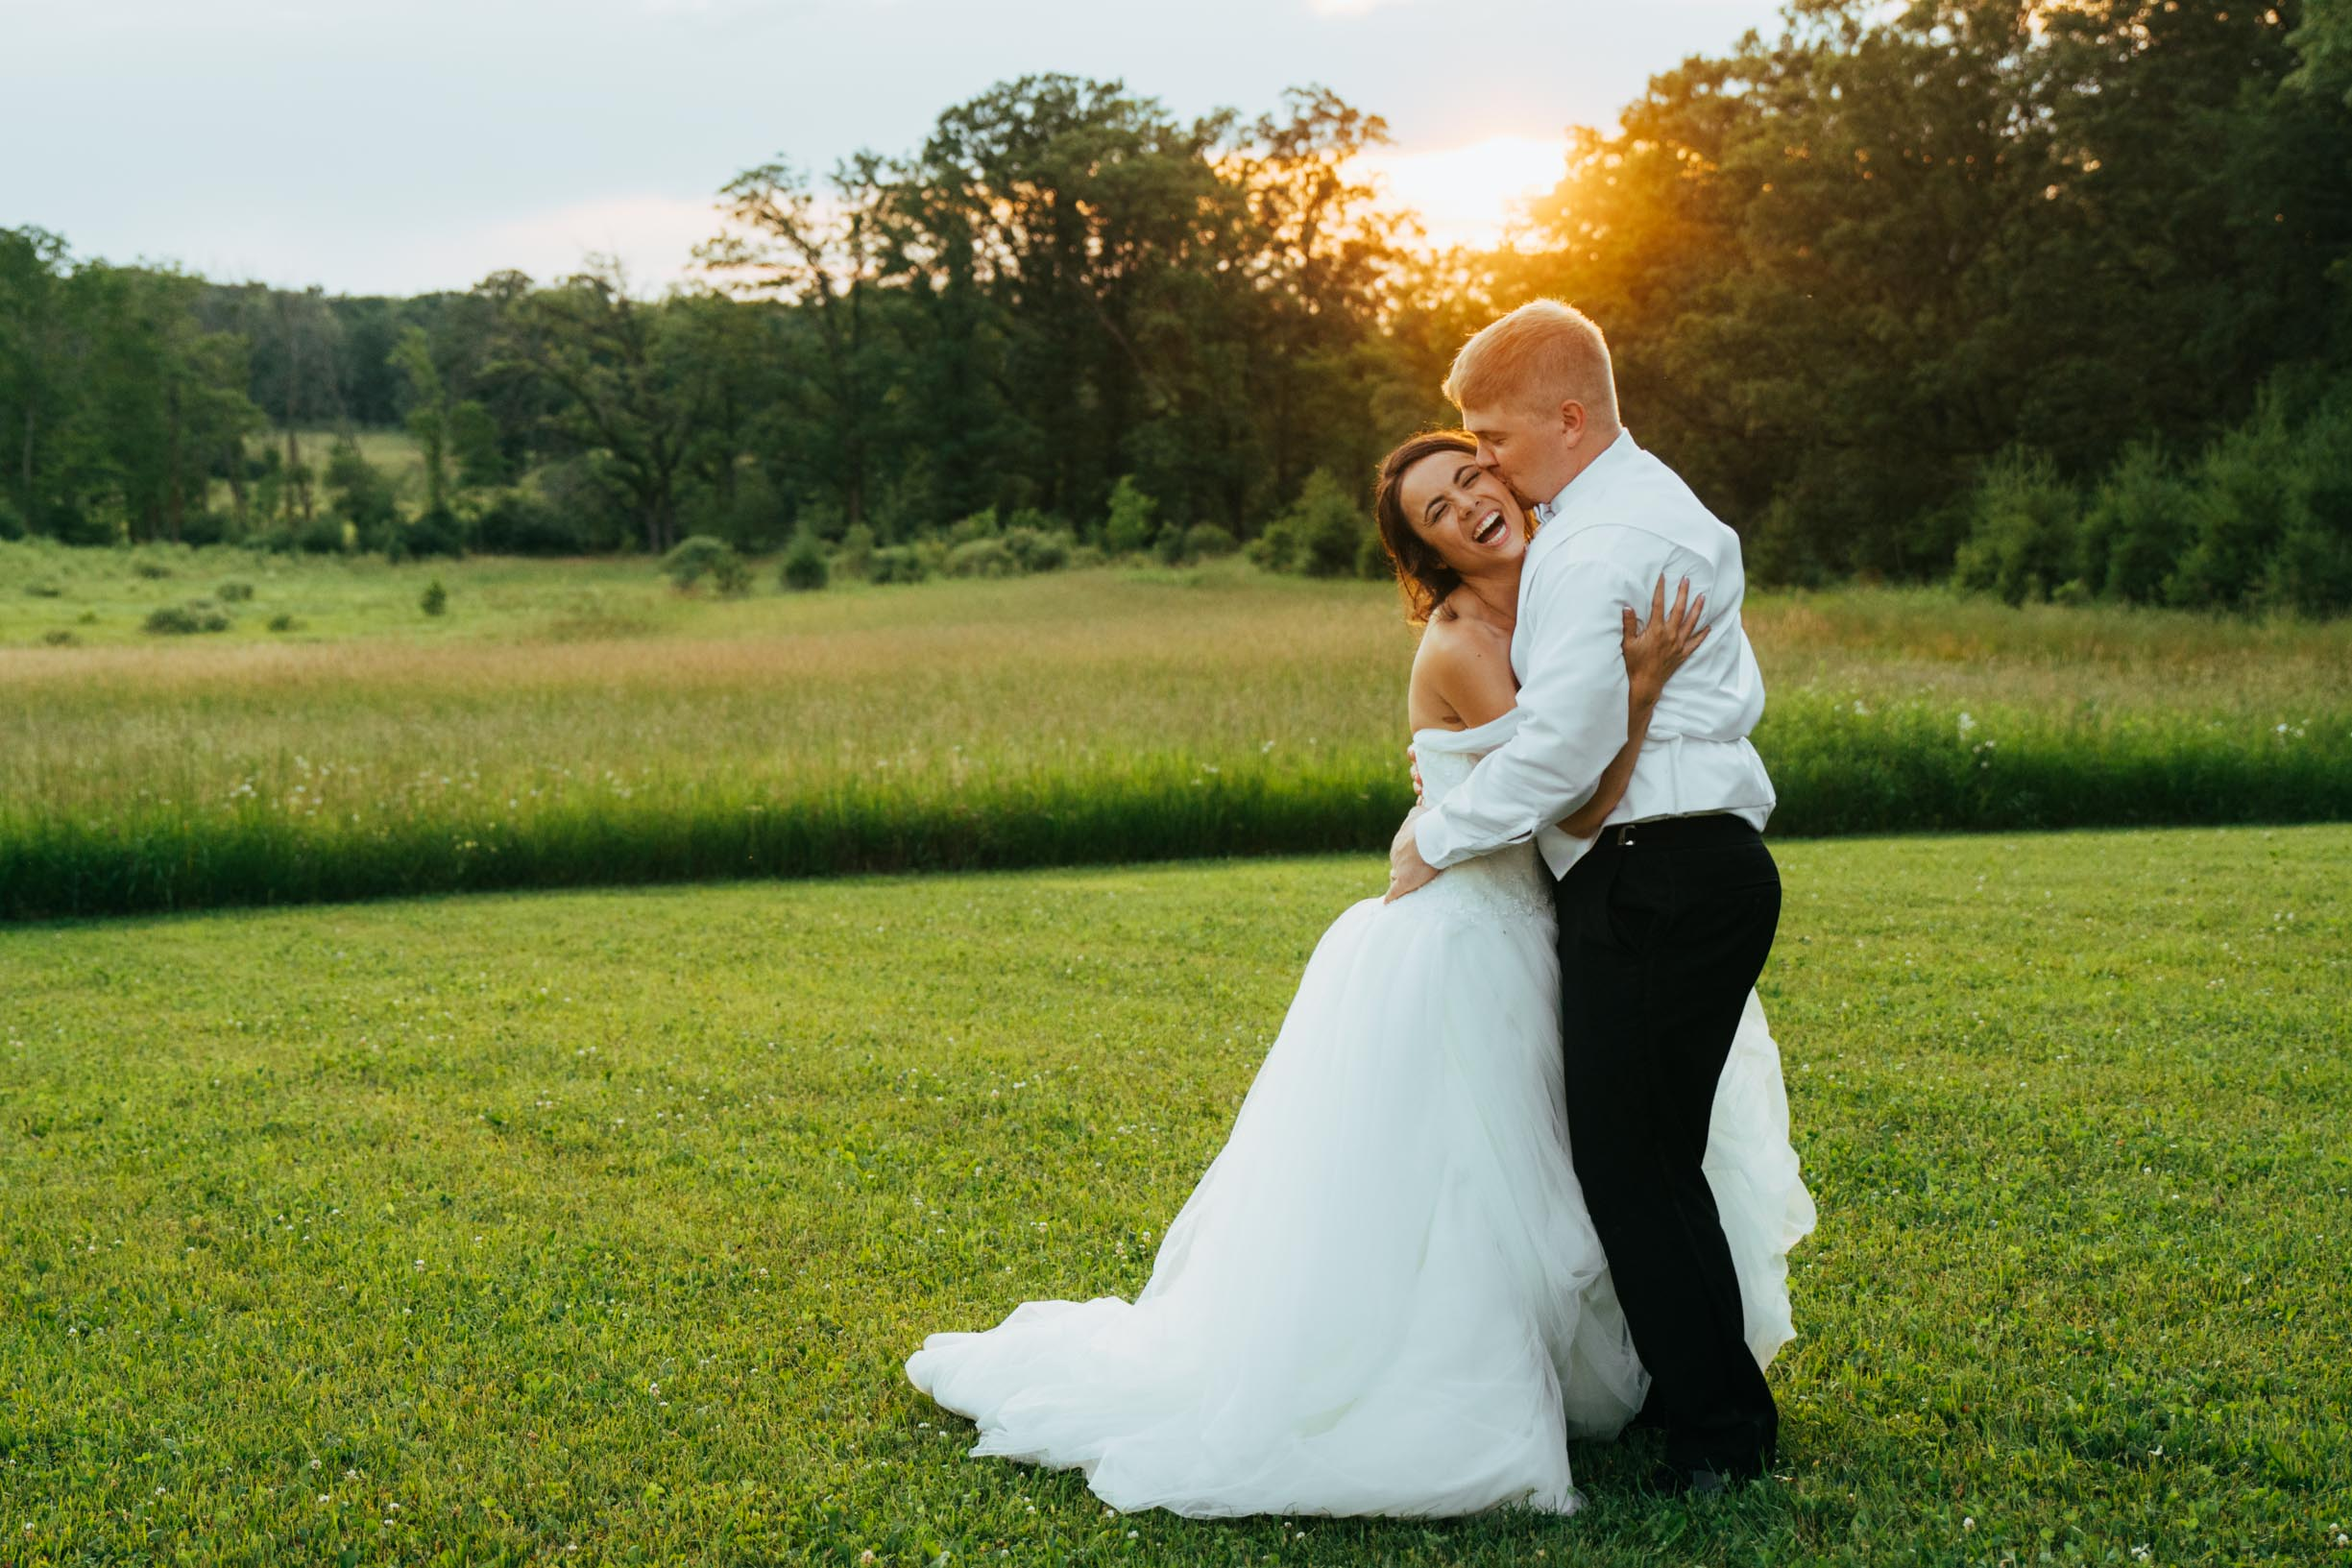 Minnesota_Bride_Groom_Portrait_Sunset_Portraits_Vineyard3.jpg